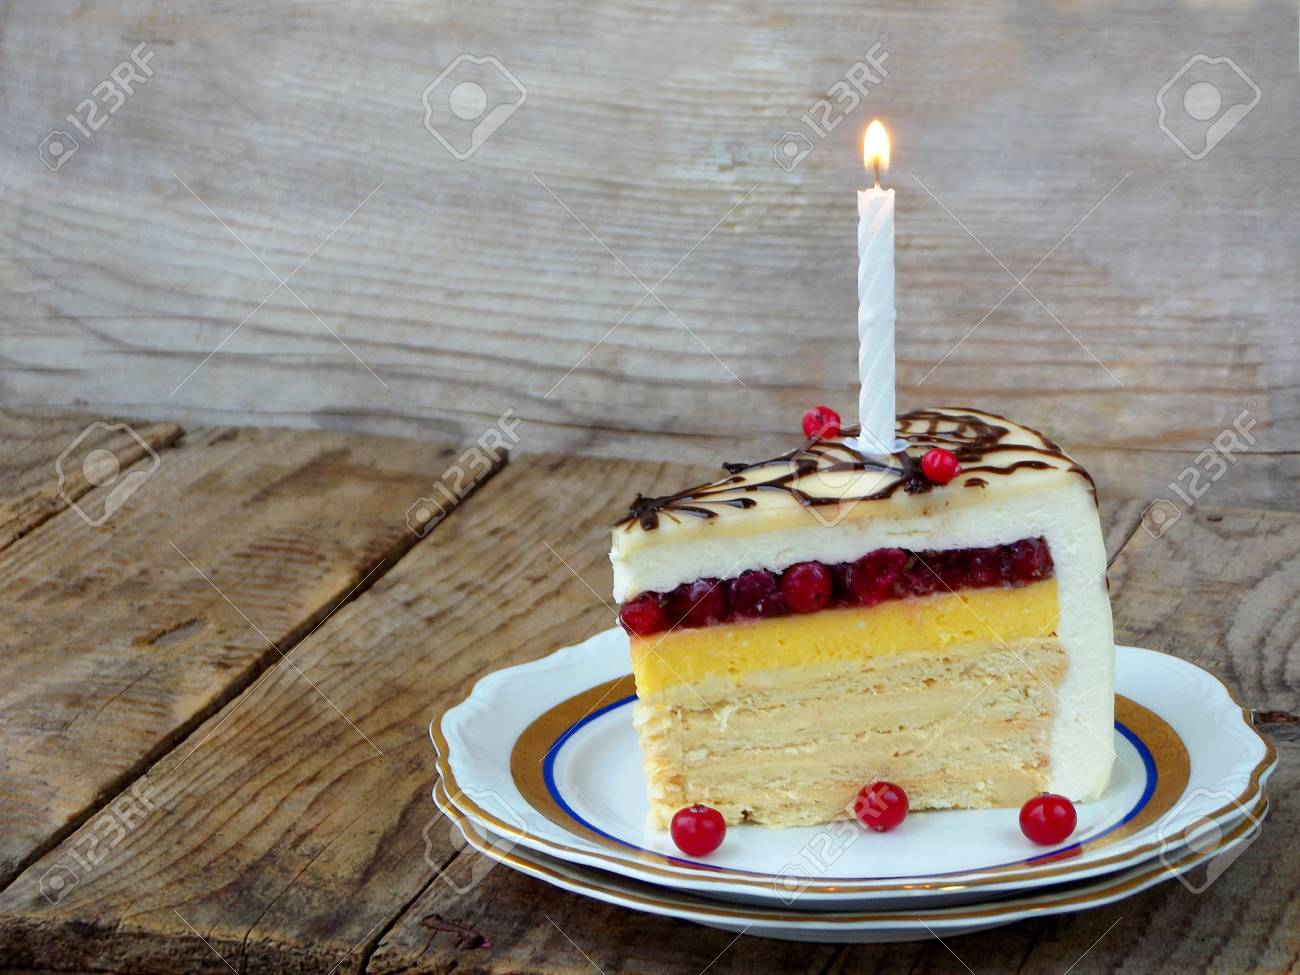 Piece Of Cake Napoleon With Lighted Candles Birthday Side